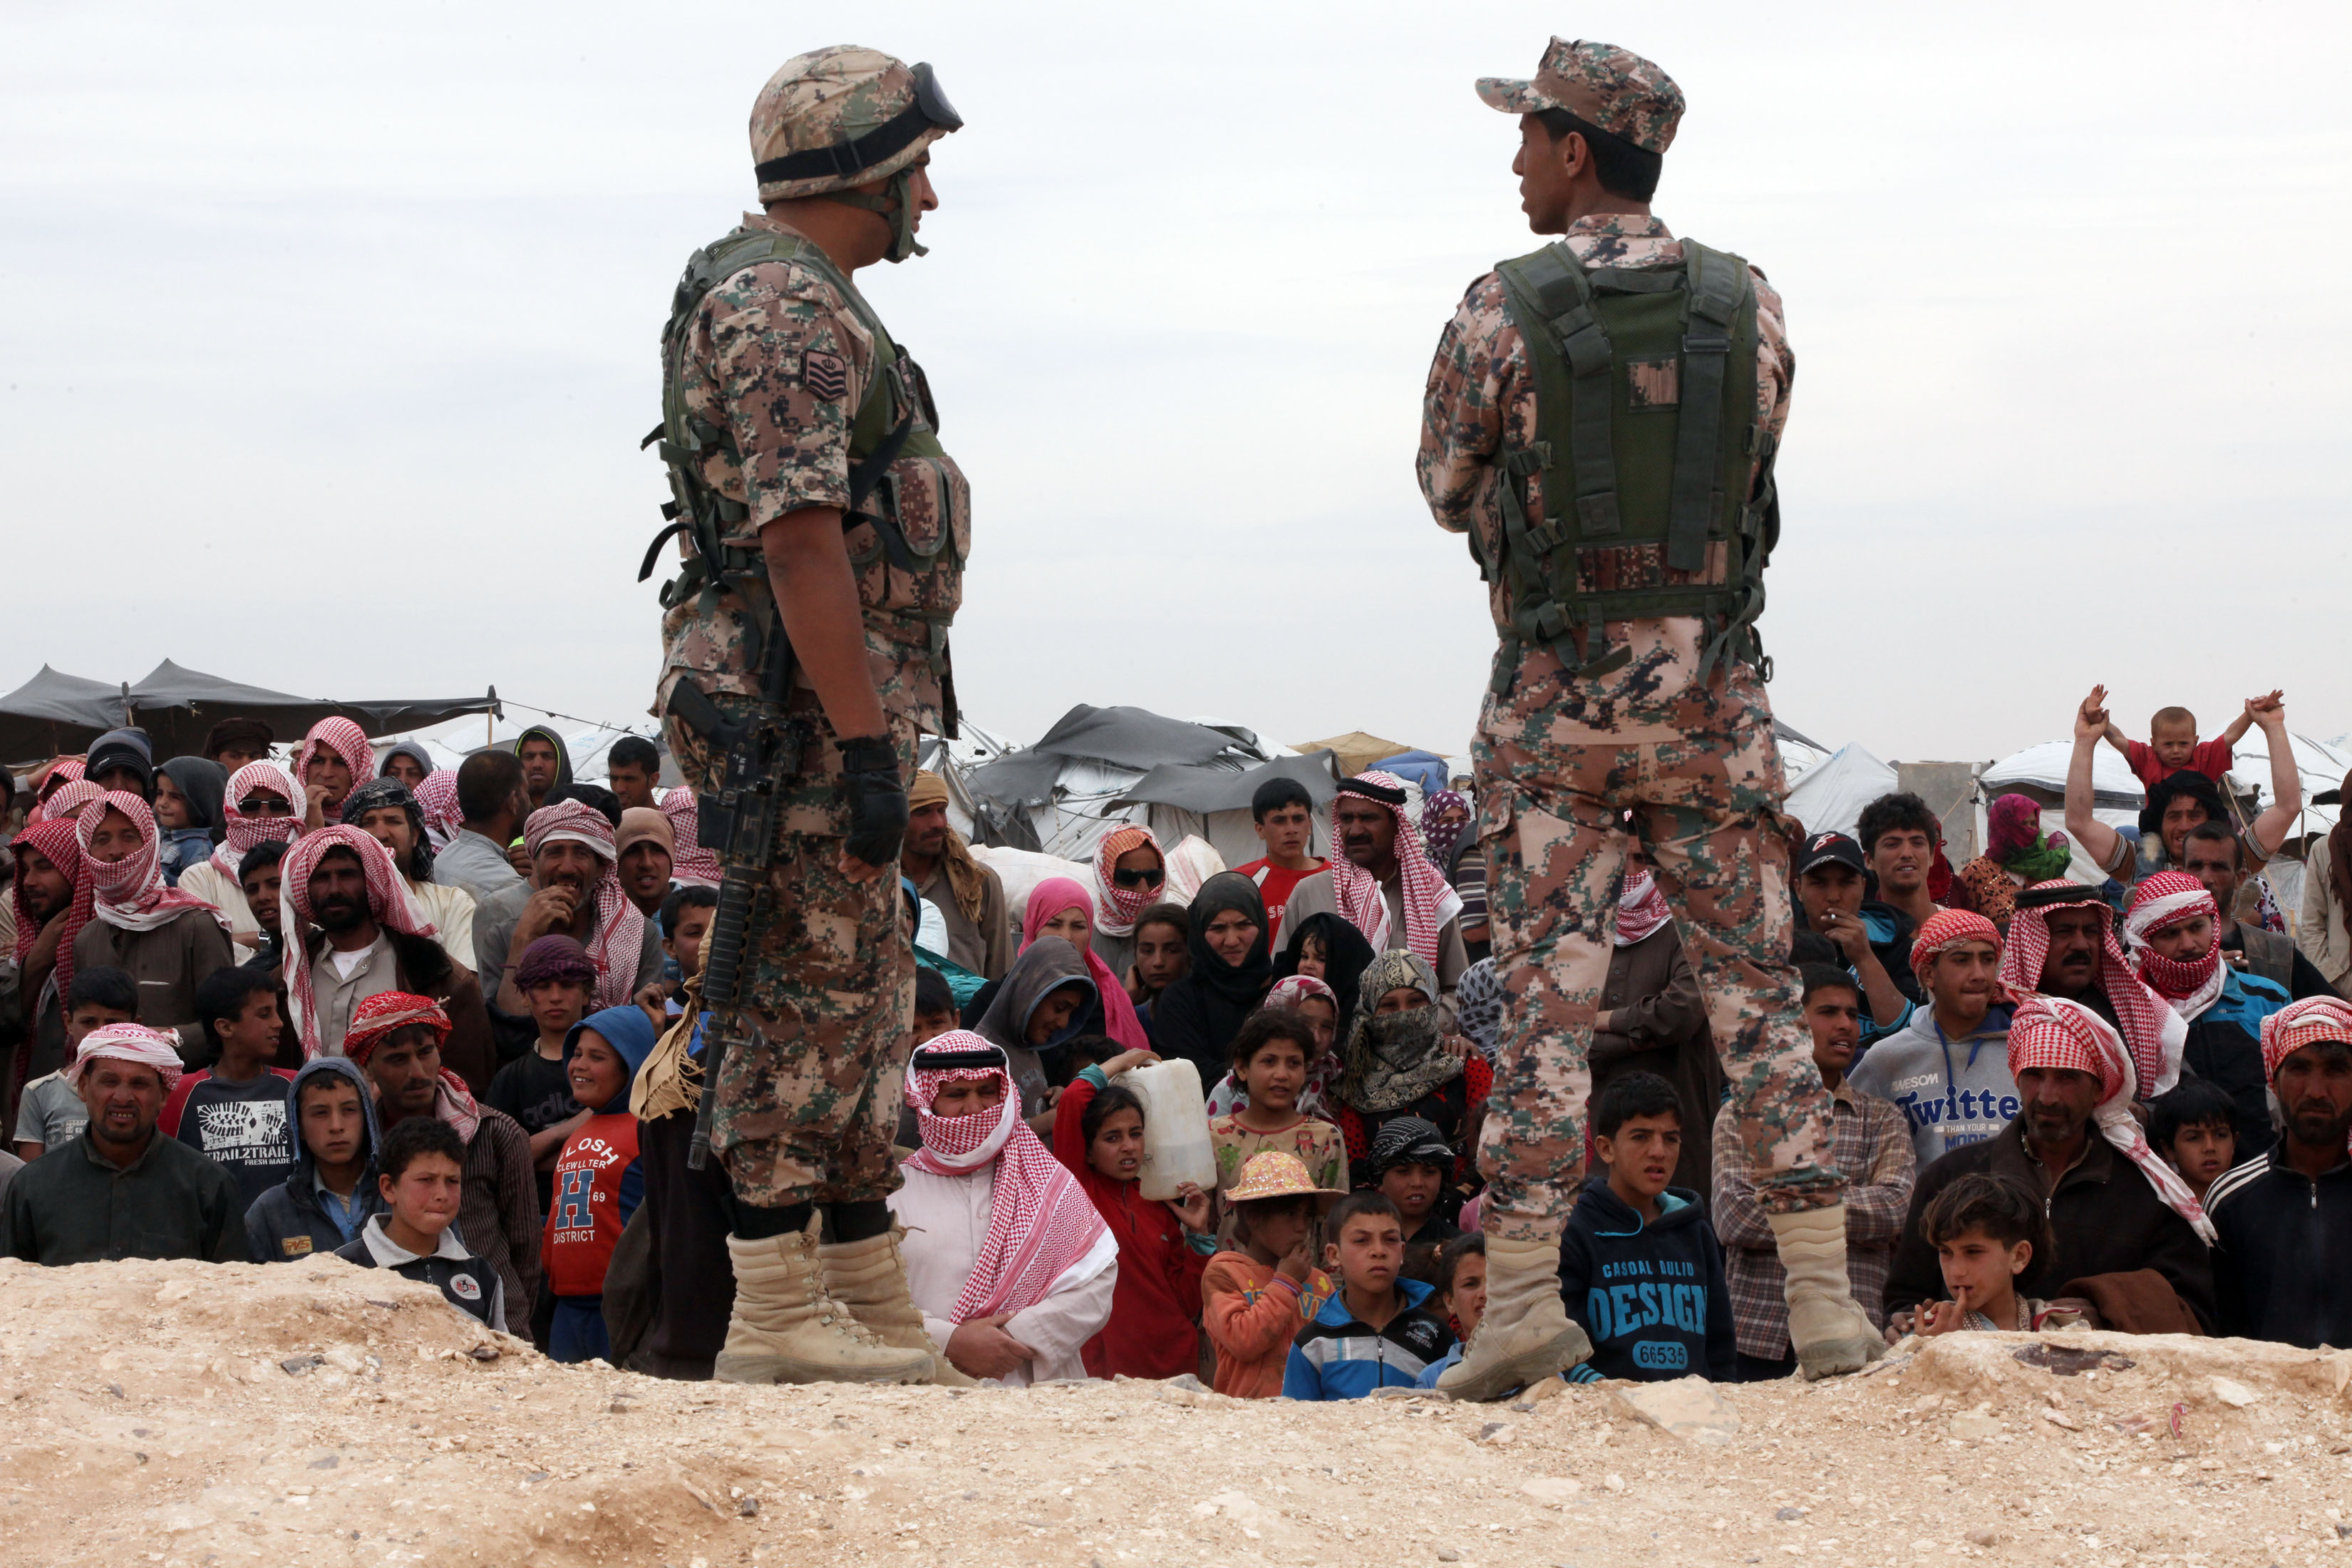 Soldiers stand near Syrian refugees who have arrived at the Jordanian military crossing point of Hadalat at the border with Syria after a long walk through the Syrian desert in Hadalat, Jordan, on May 4, 2016.